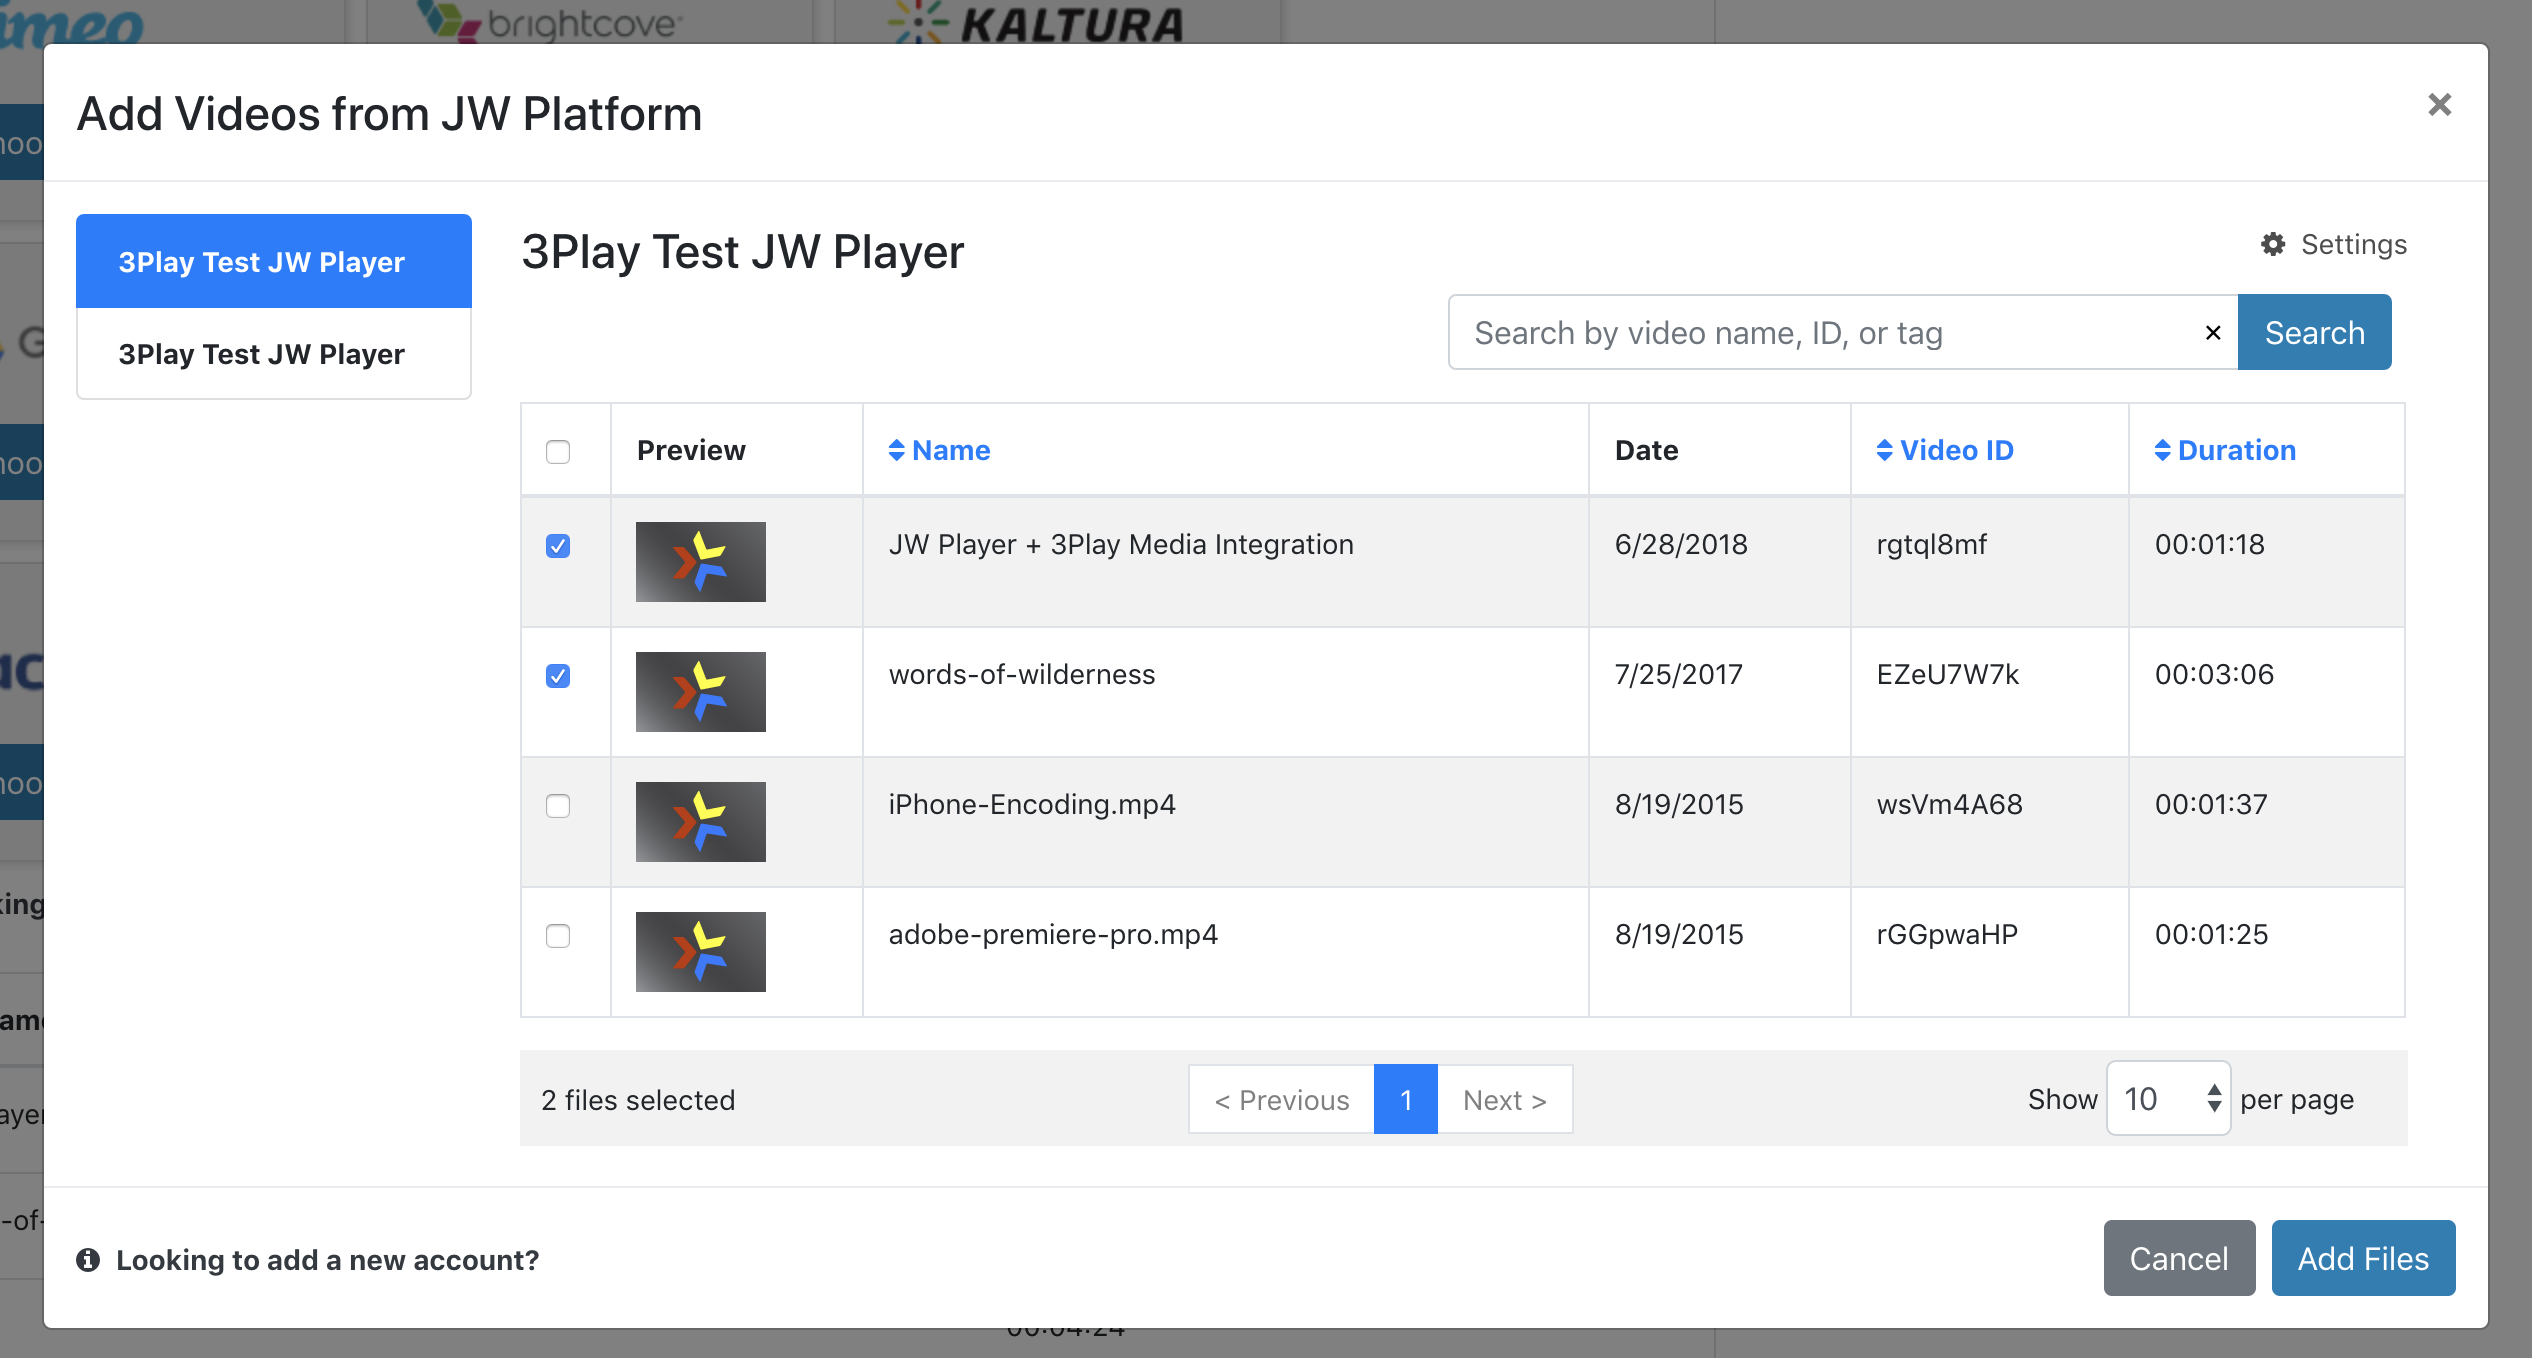 Select videos hosted on JW Platform from thumbnail feed for closed captions